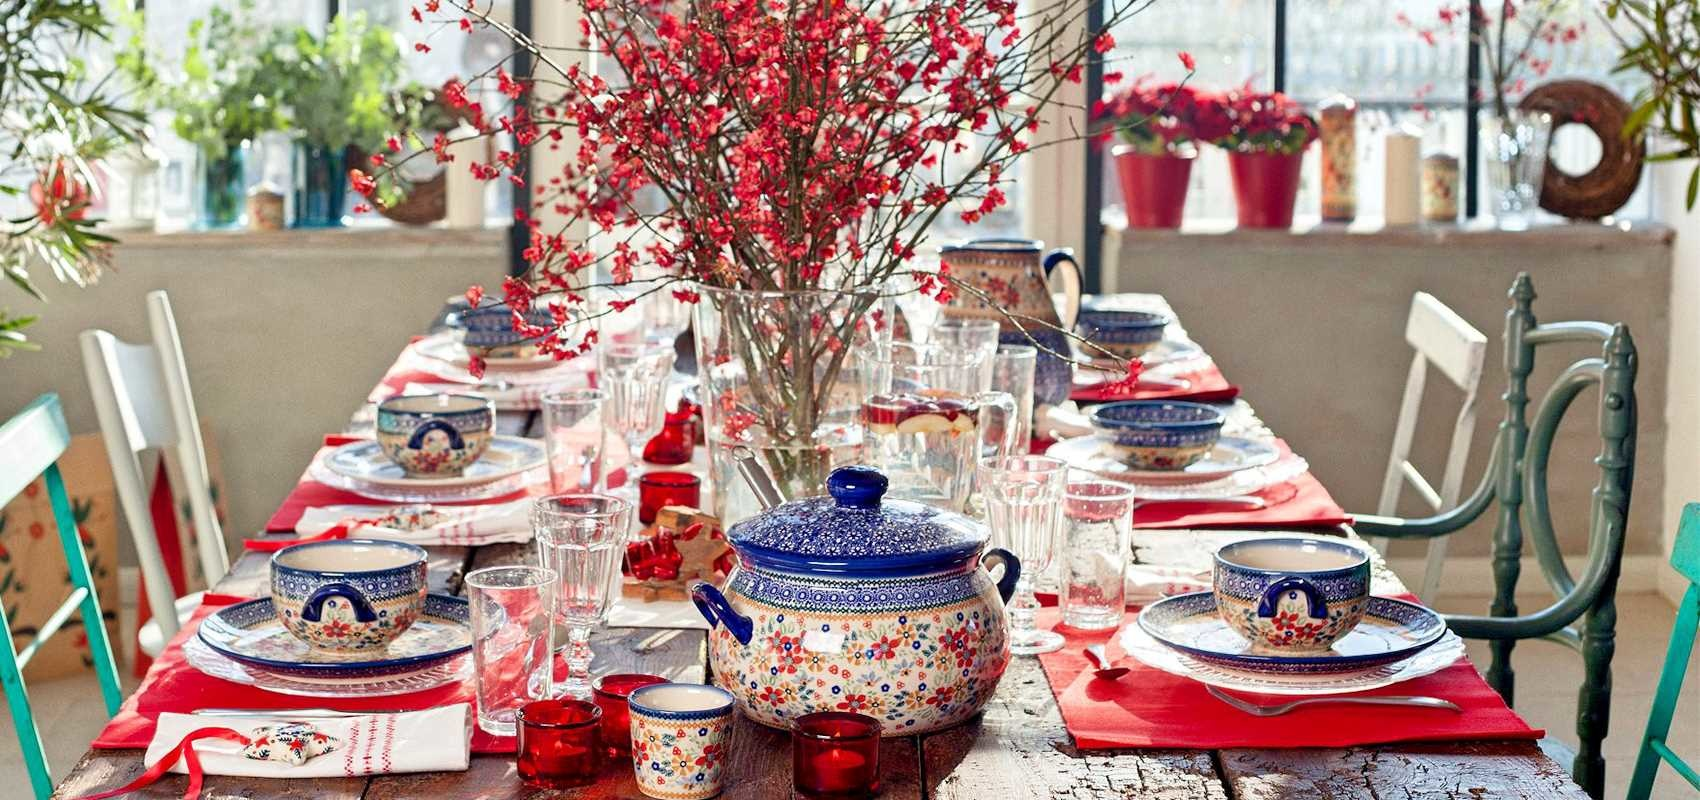 'Tis The Season For Holiday Polish Pottery Place Settings